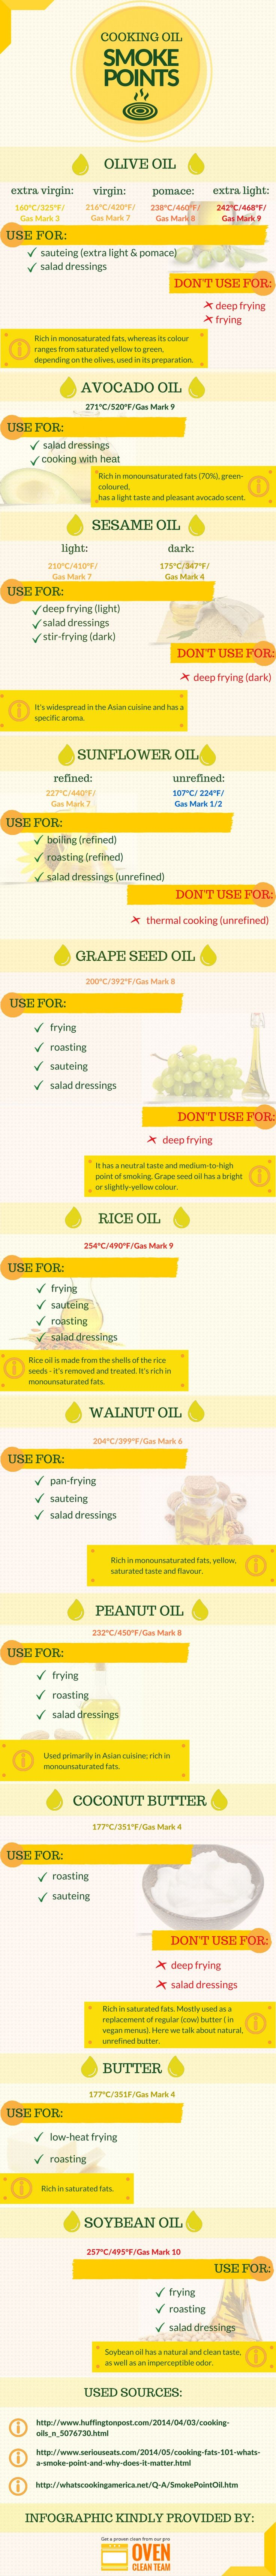 Here's a handy infographic that describes the most commonly used cooking oils' smoke points. If you want to cook healthy and right - here's what you need :)